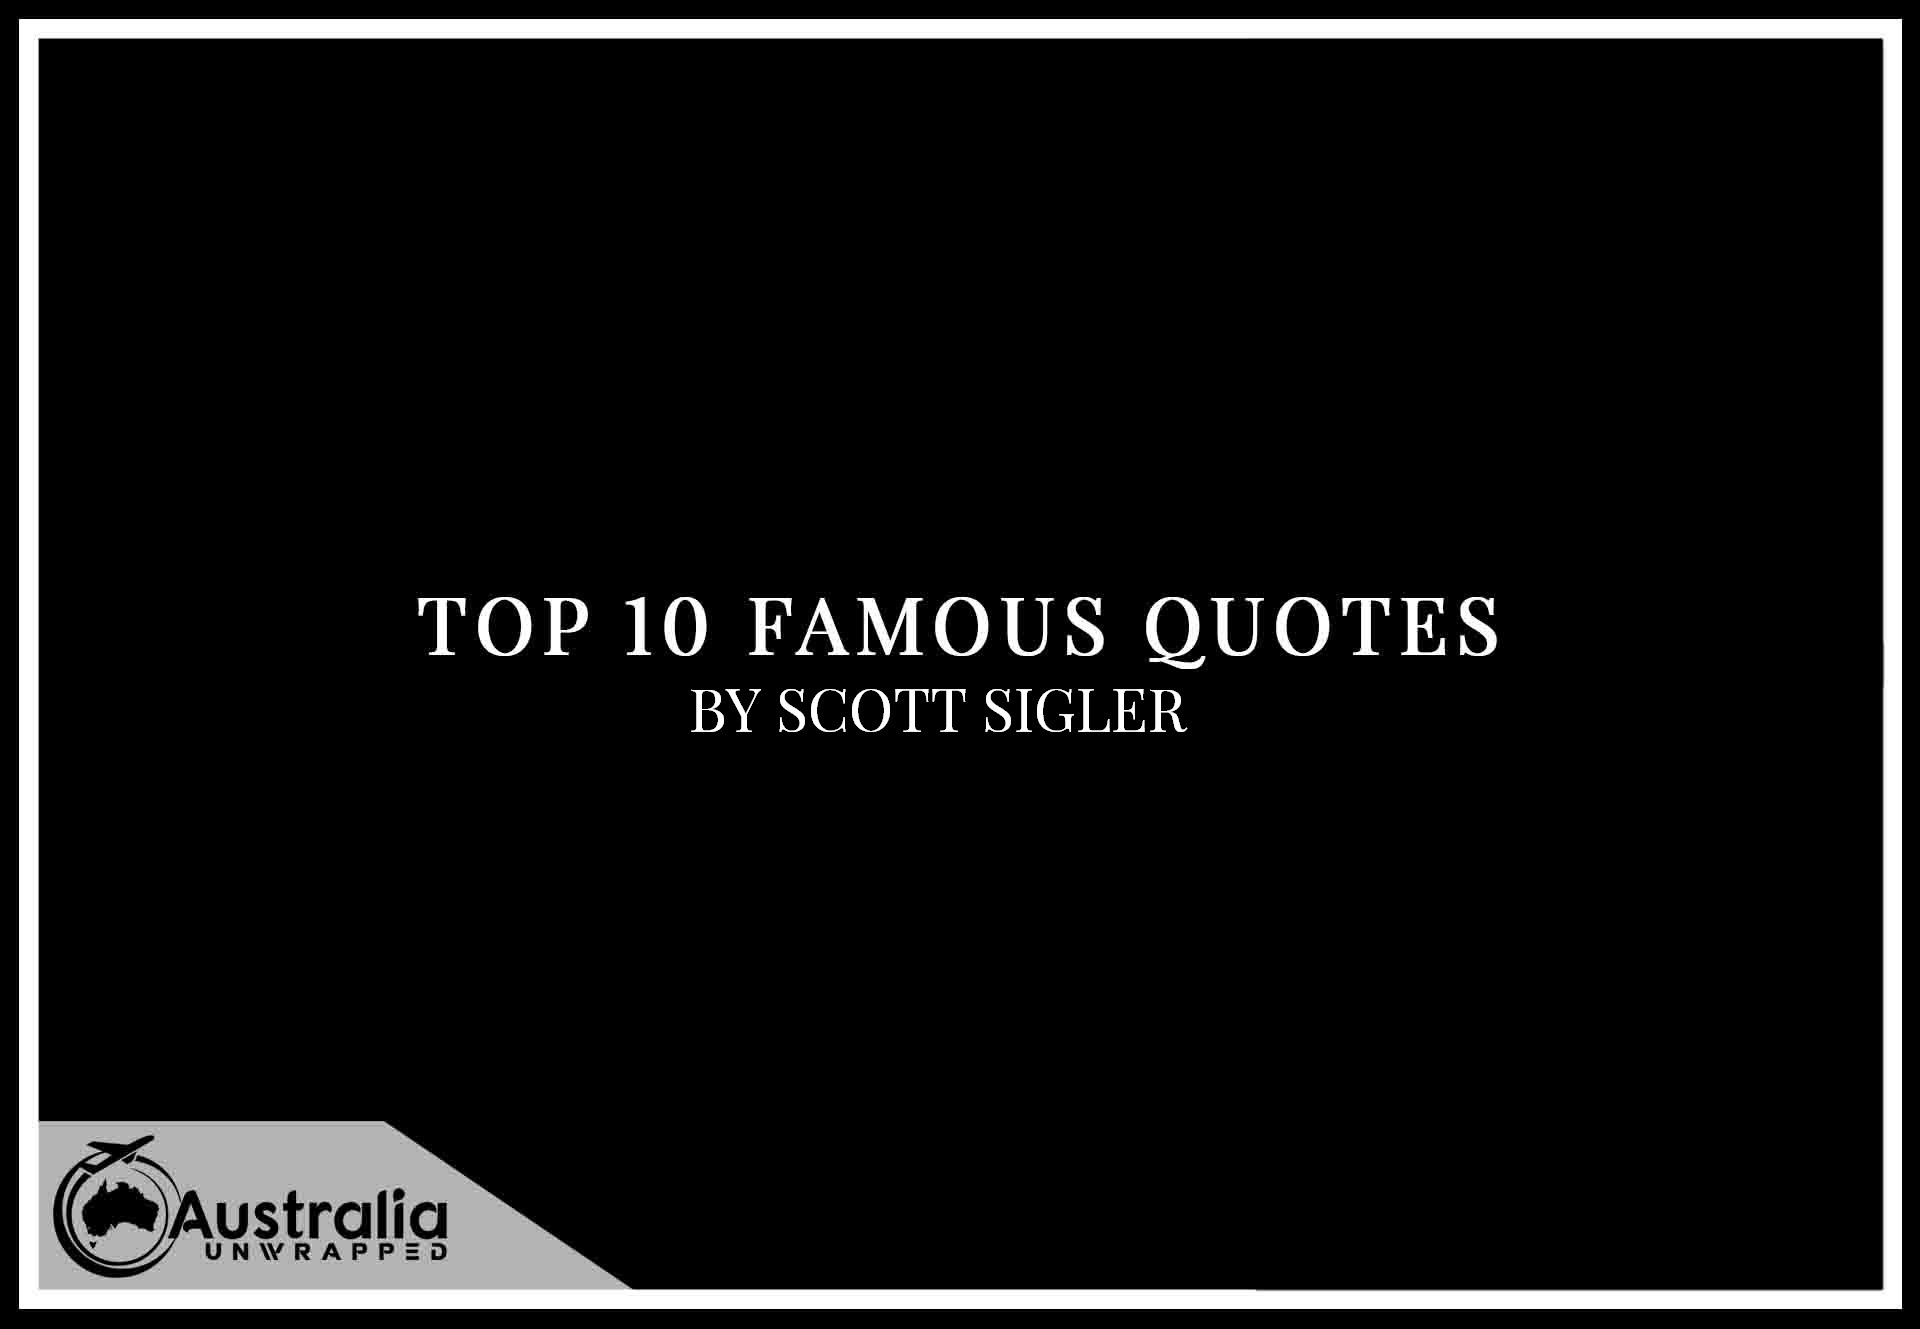 Top 10 Famous Quotes by Author Scott Sigler